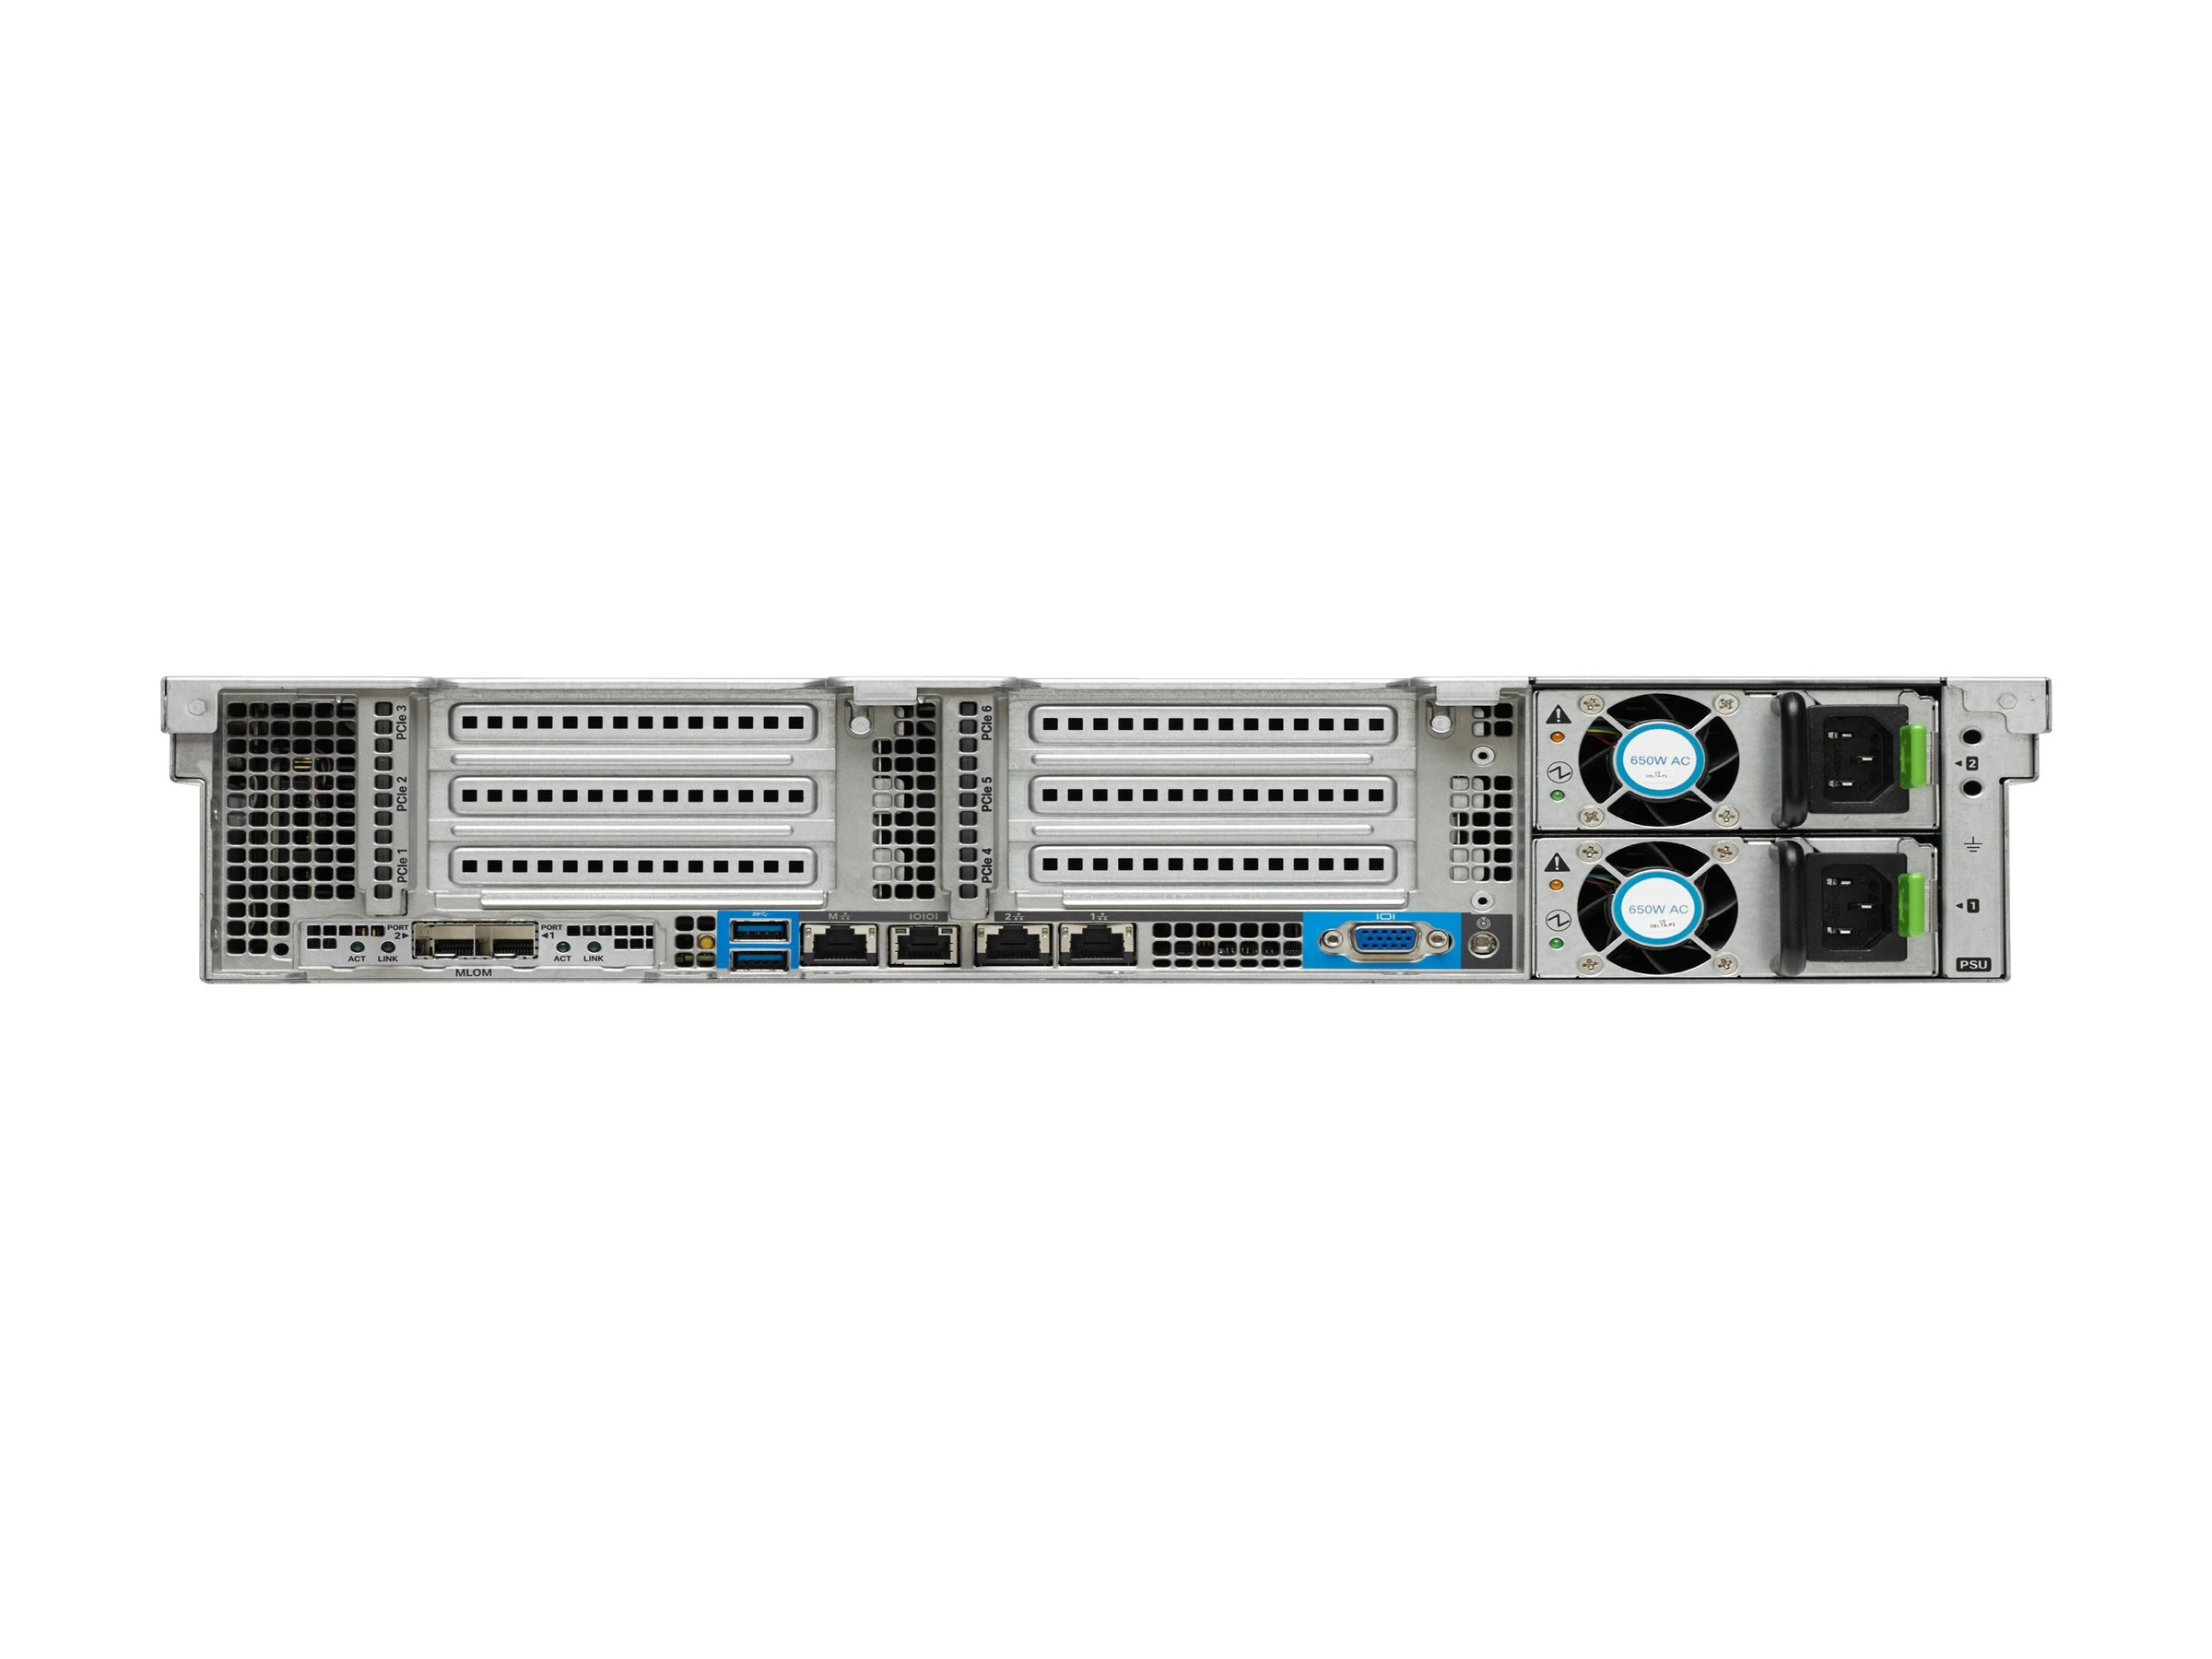 Cisco UCS-SP-C240M4-F1 Image 7